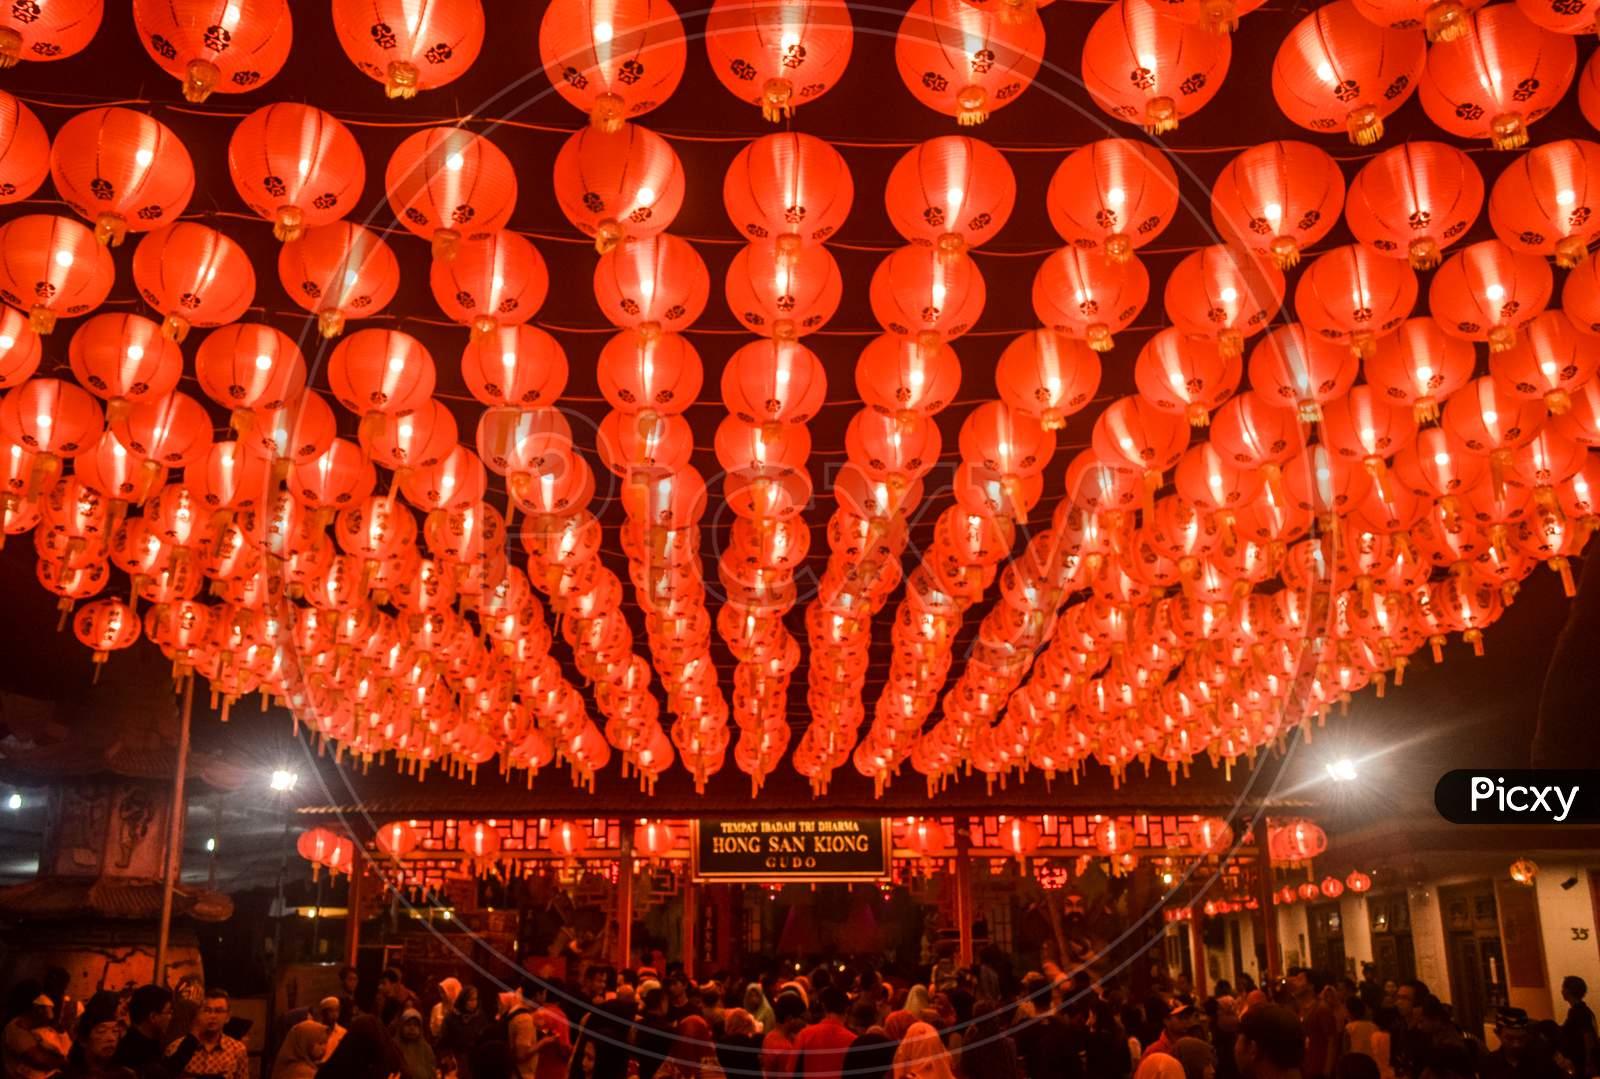 Rows of LAMPION at the Gudo Jombang temple during a celebration event in September 2019